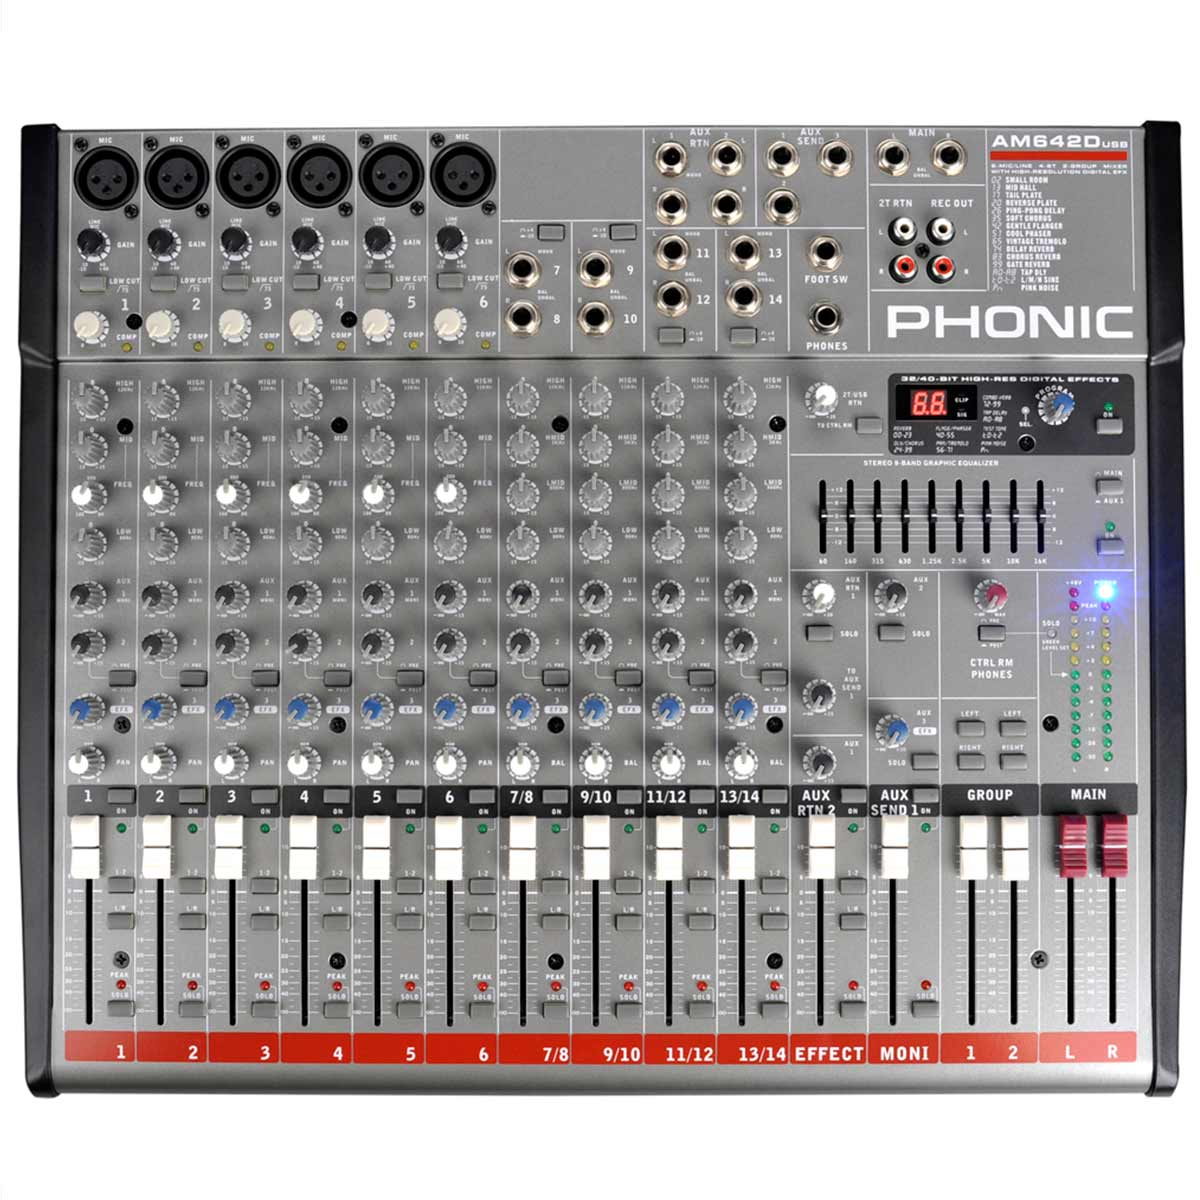 AM642DUSB - Mesa de Som / Mixer 14 Canais AM 642 D USB - Phonic